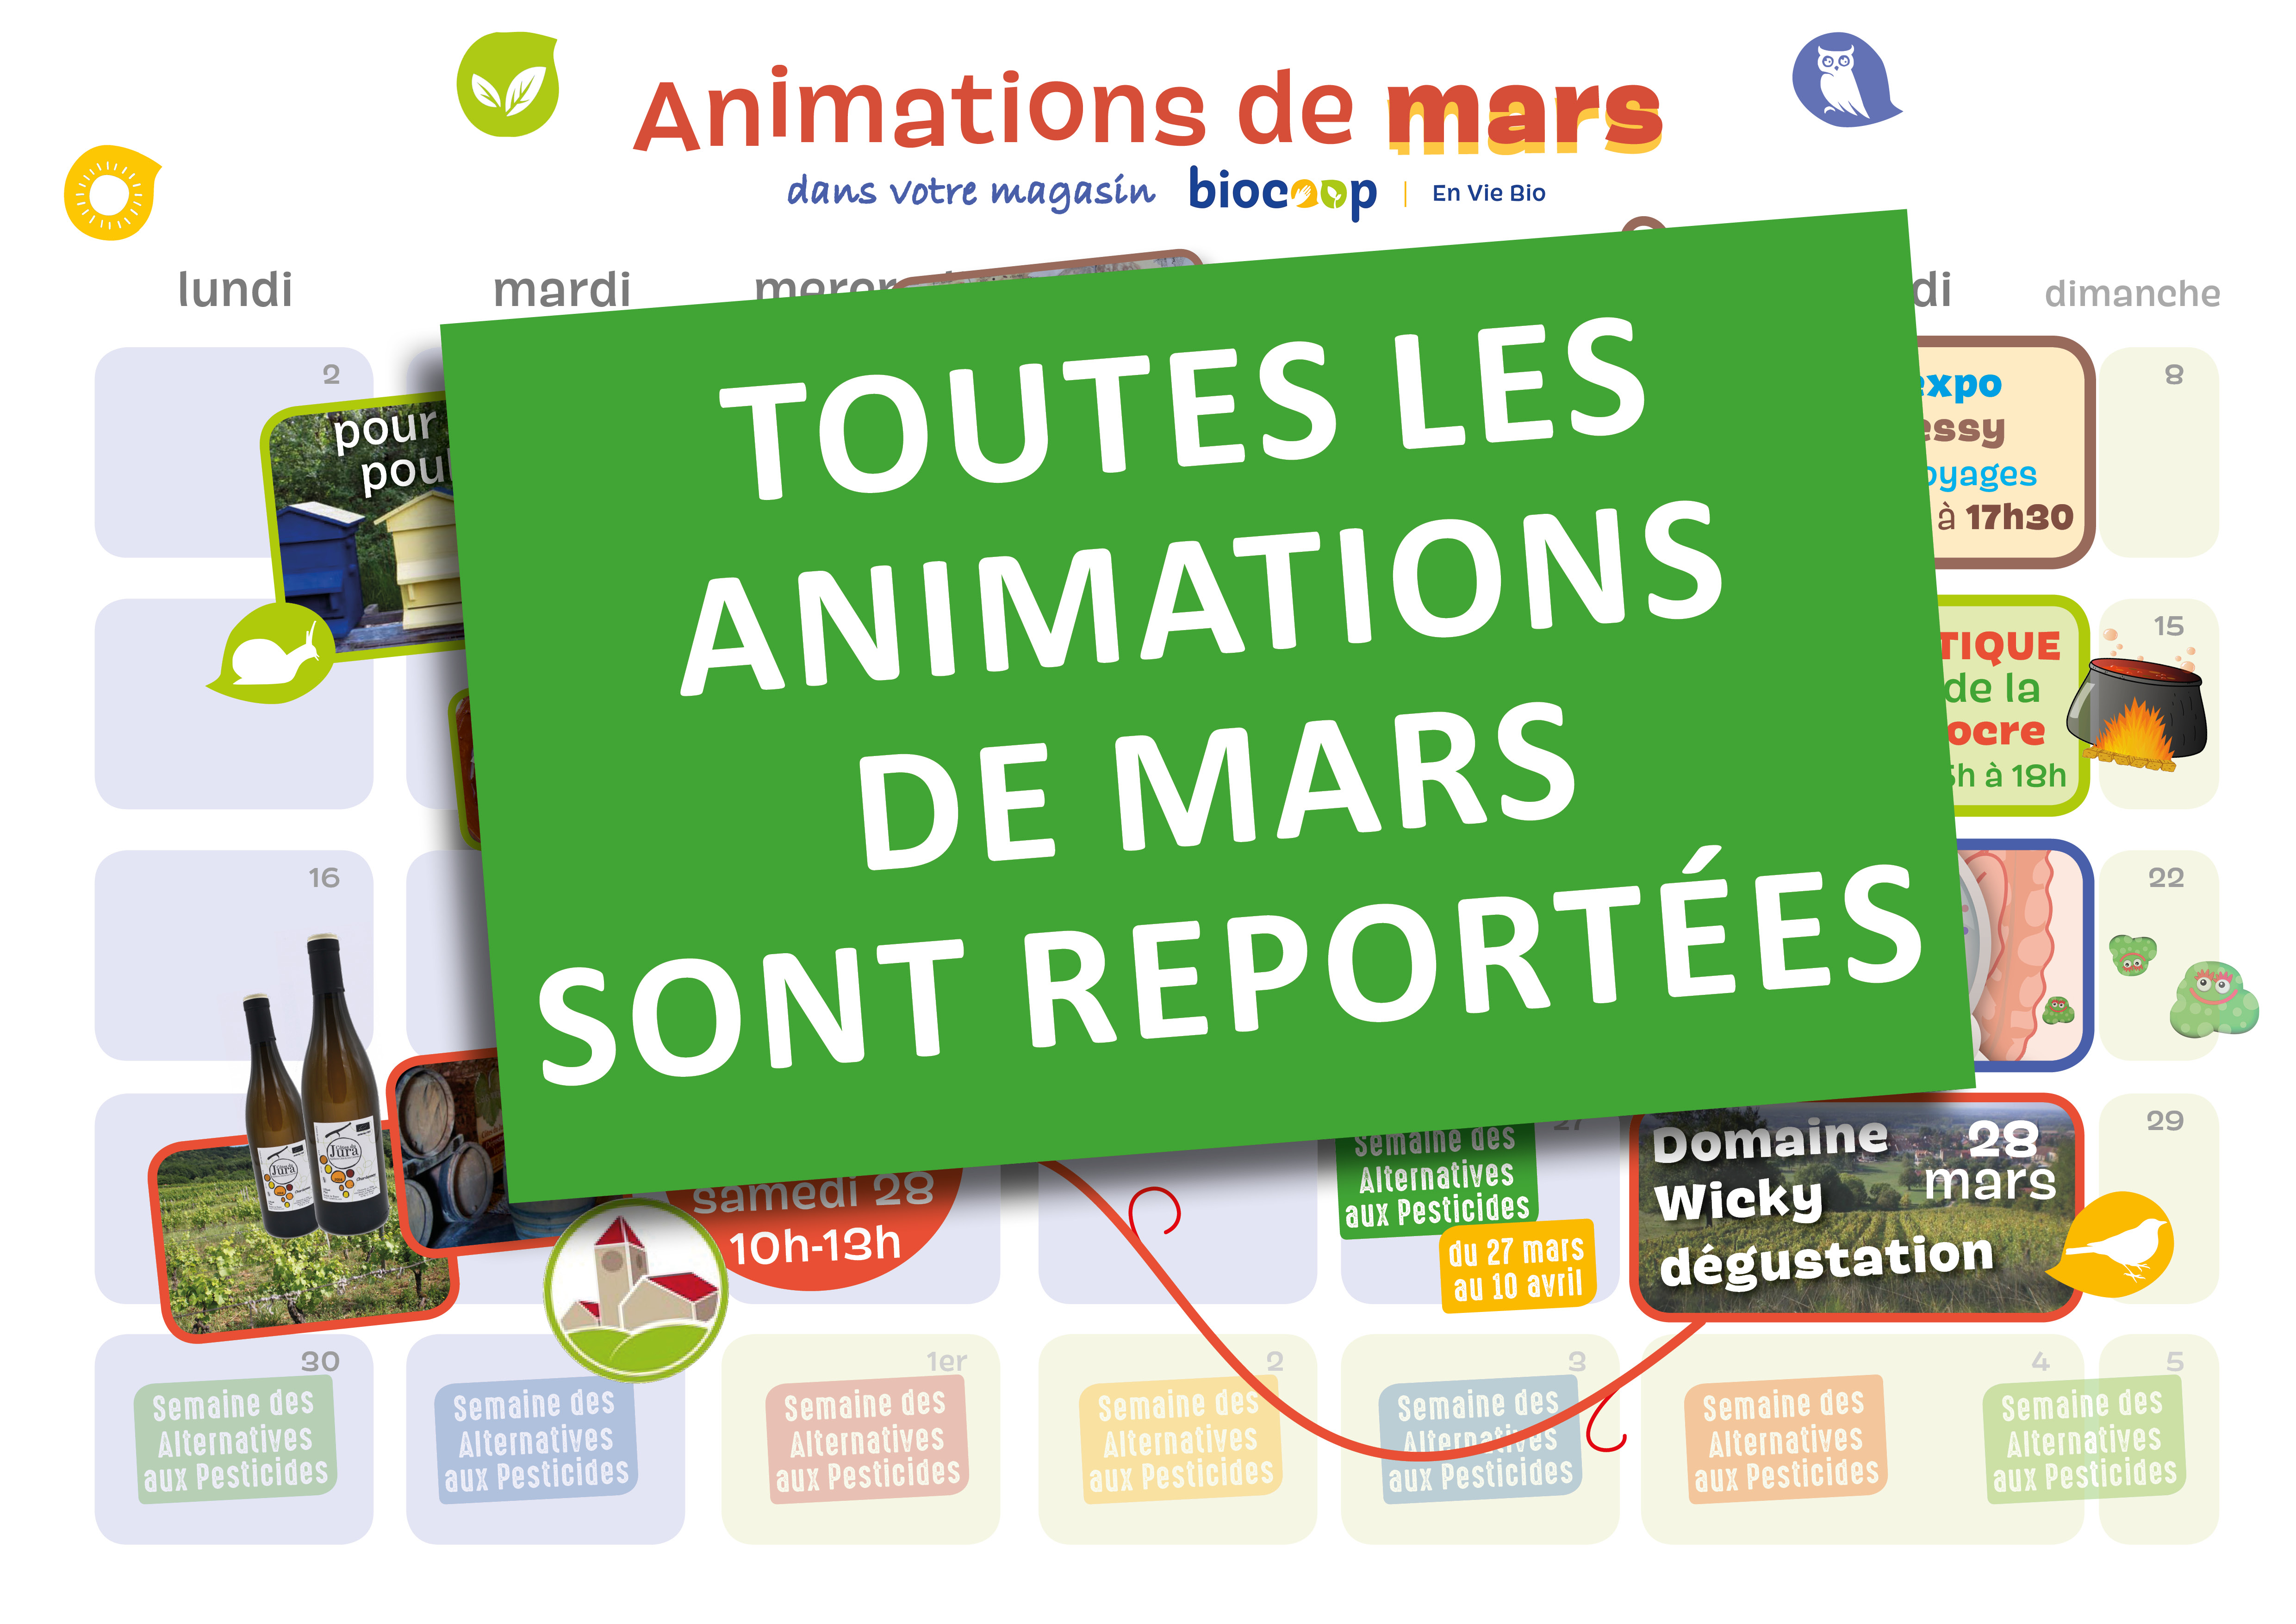 Animations magasin de mars